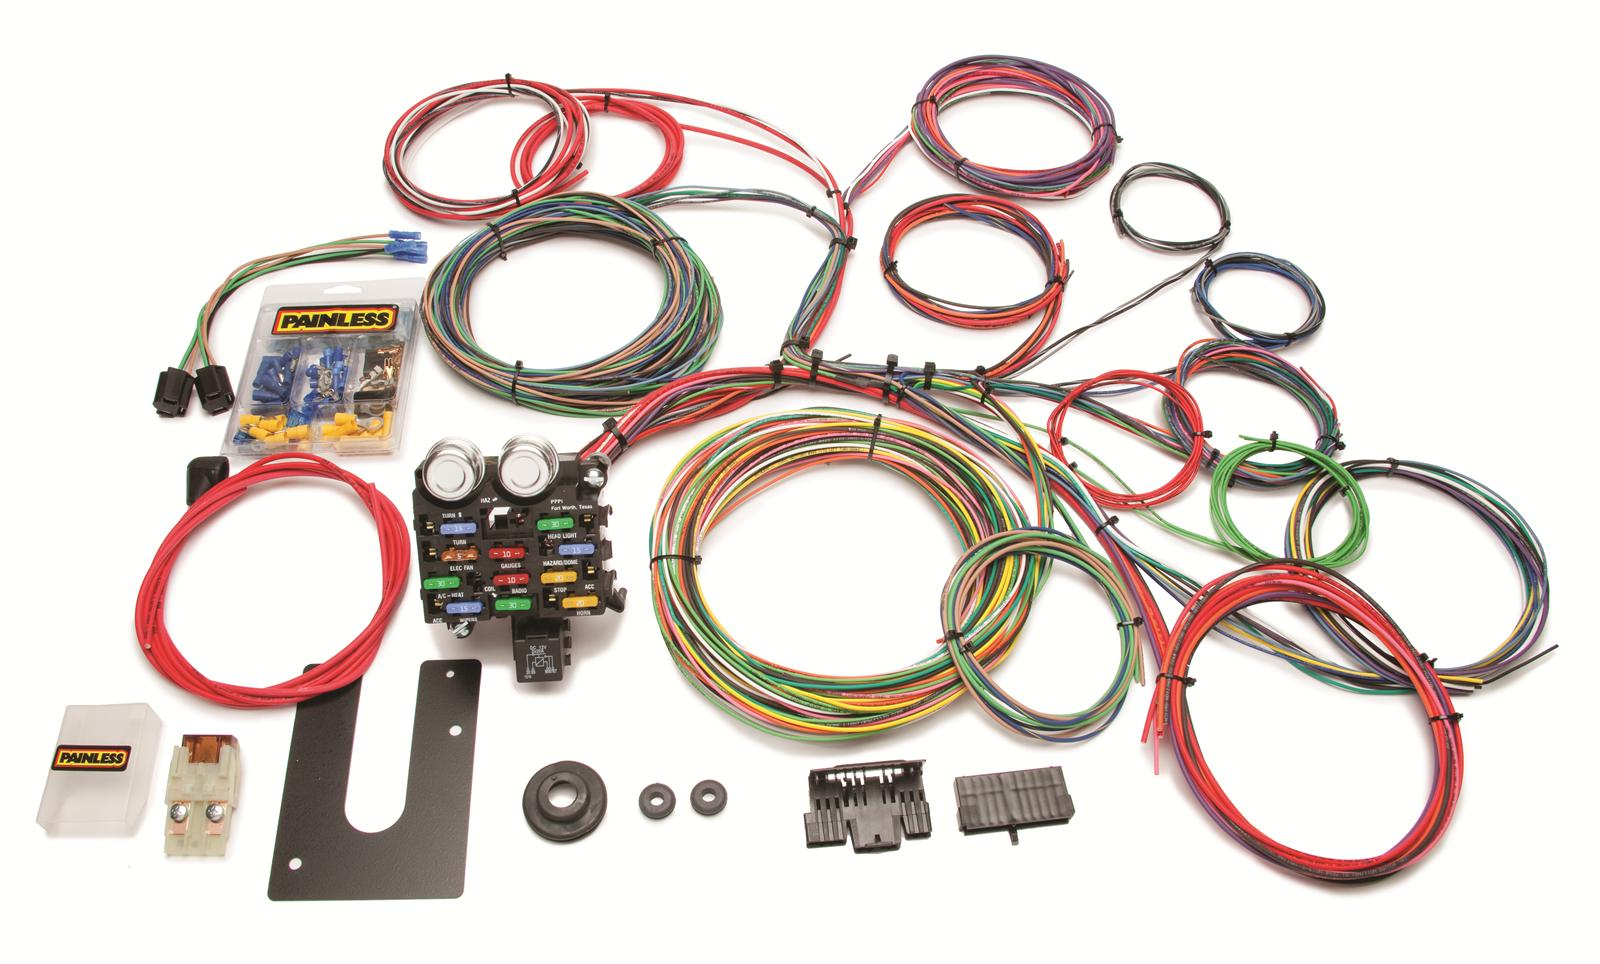 painless performance 21 circuit universal harnesses 10102 free rh summitracing com Painless Wiring 10140 Diagrams Painless Wiring Diagrams